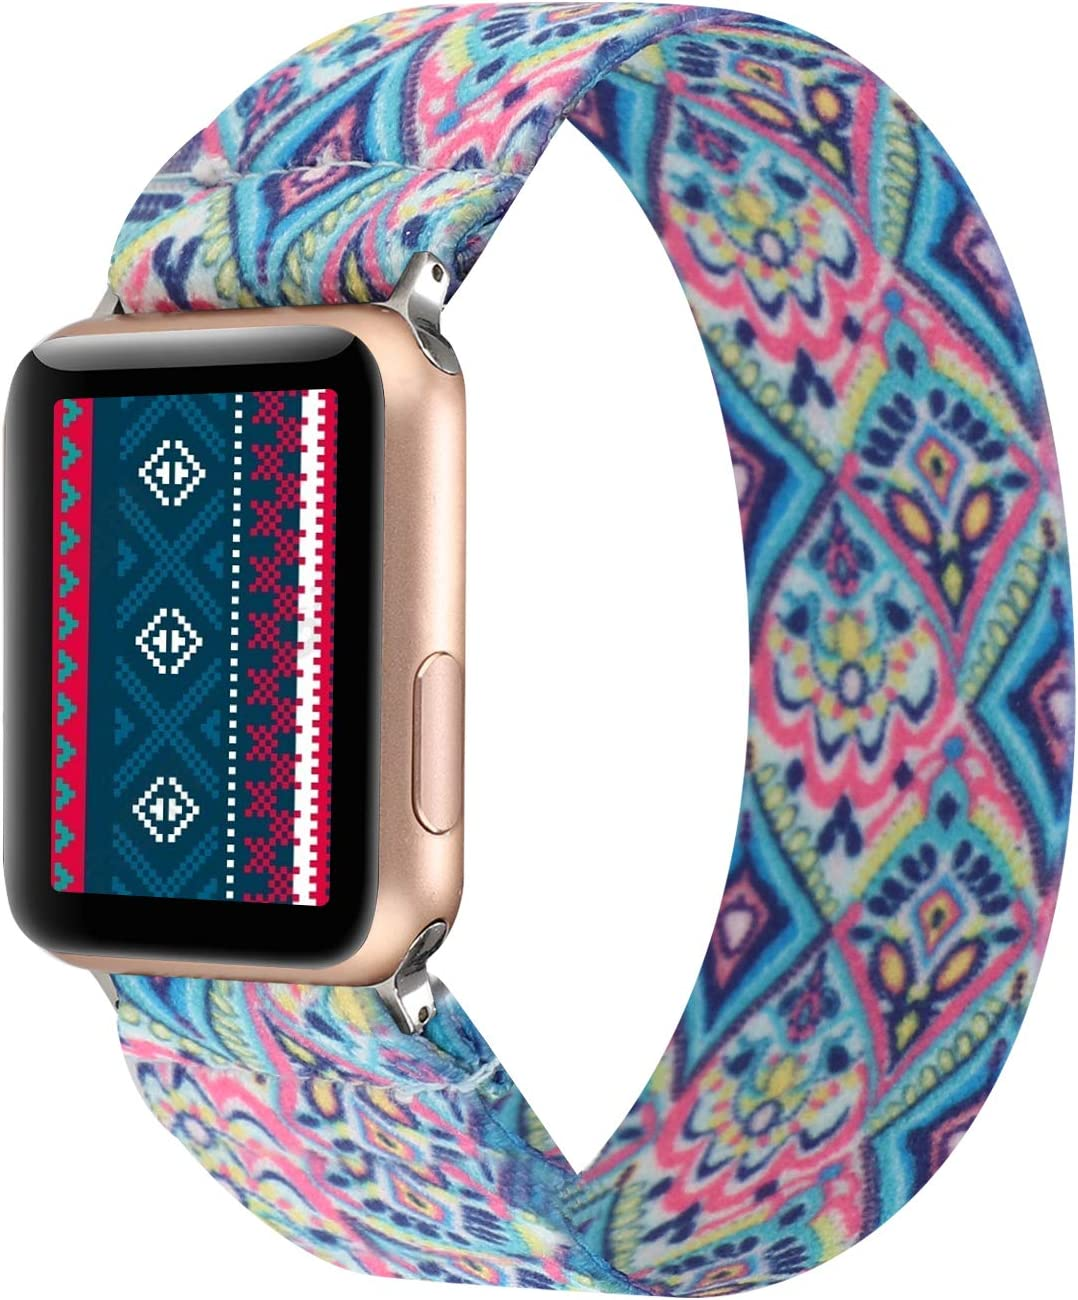 PENKEY Stretchy Band Compatible with Apple Watch Elastic Band 38mm 40mm Cute Pattern Soft Nylon Strap Replacement Wristband for iWatch Series 5/4/3/2/1 (Boho Diamond, 38mm/40mm Small Size)